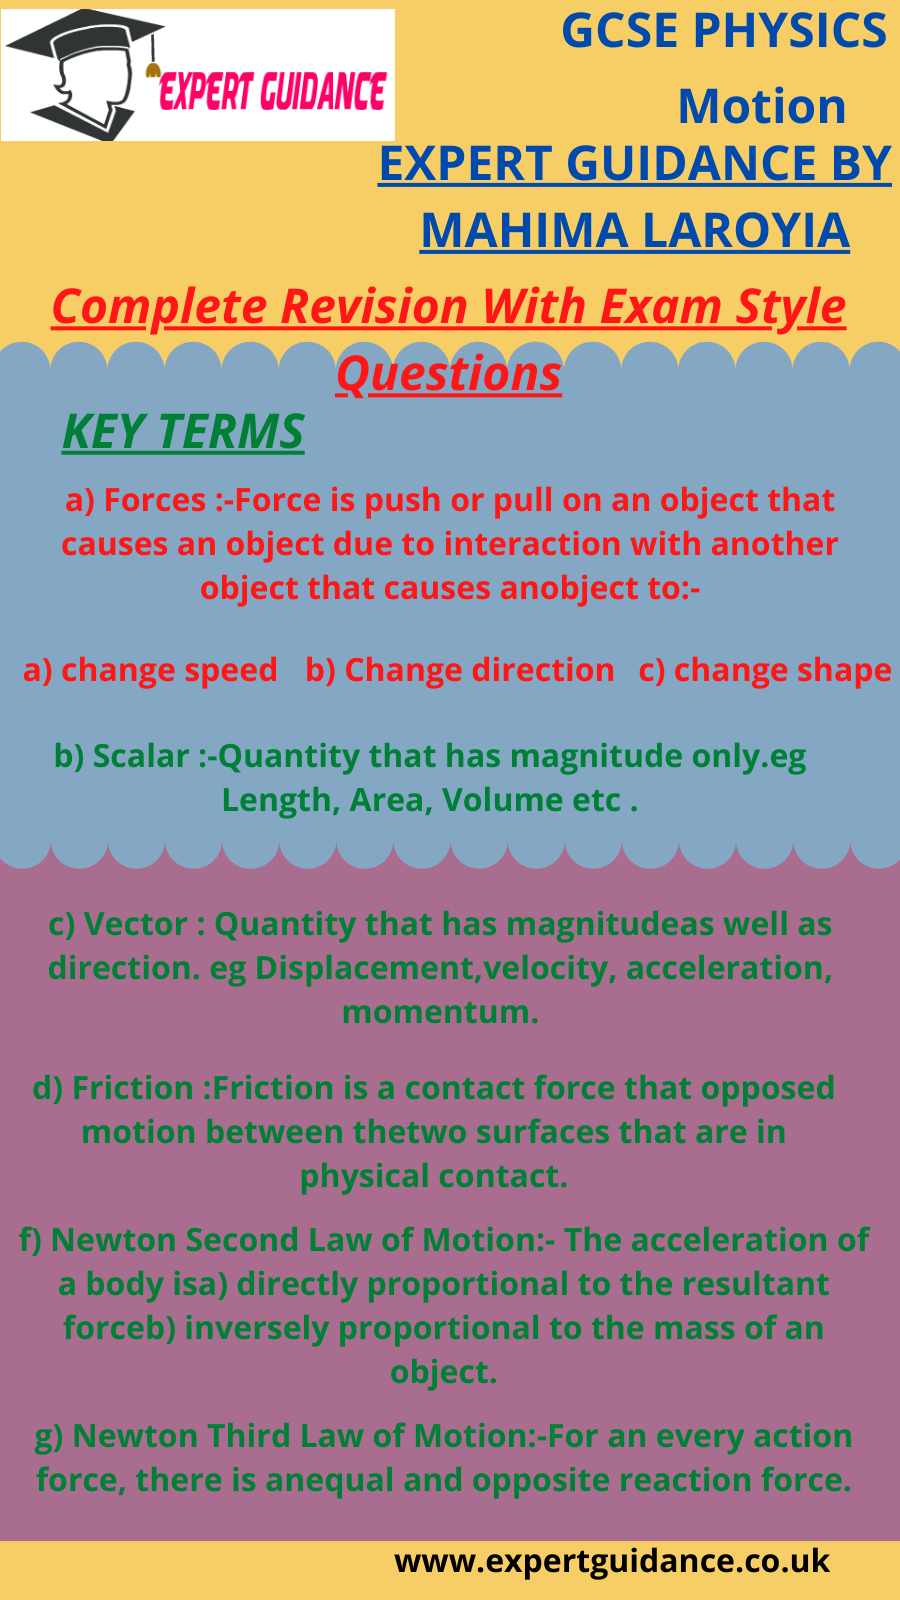 Motion Key Terms Complete Revision With Exam Style Questions Answer Notes In 2020 Gcse Physics Gcse Science Revision Gcse Science